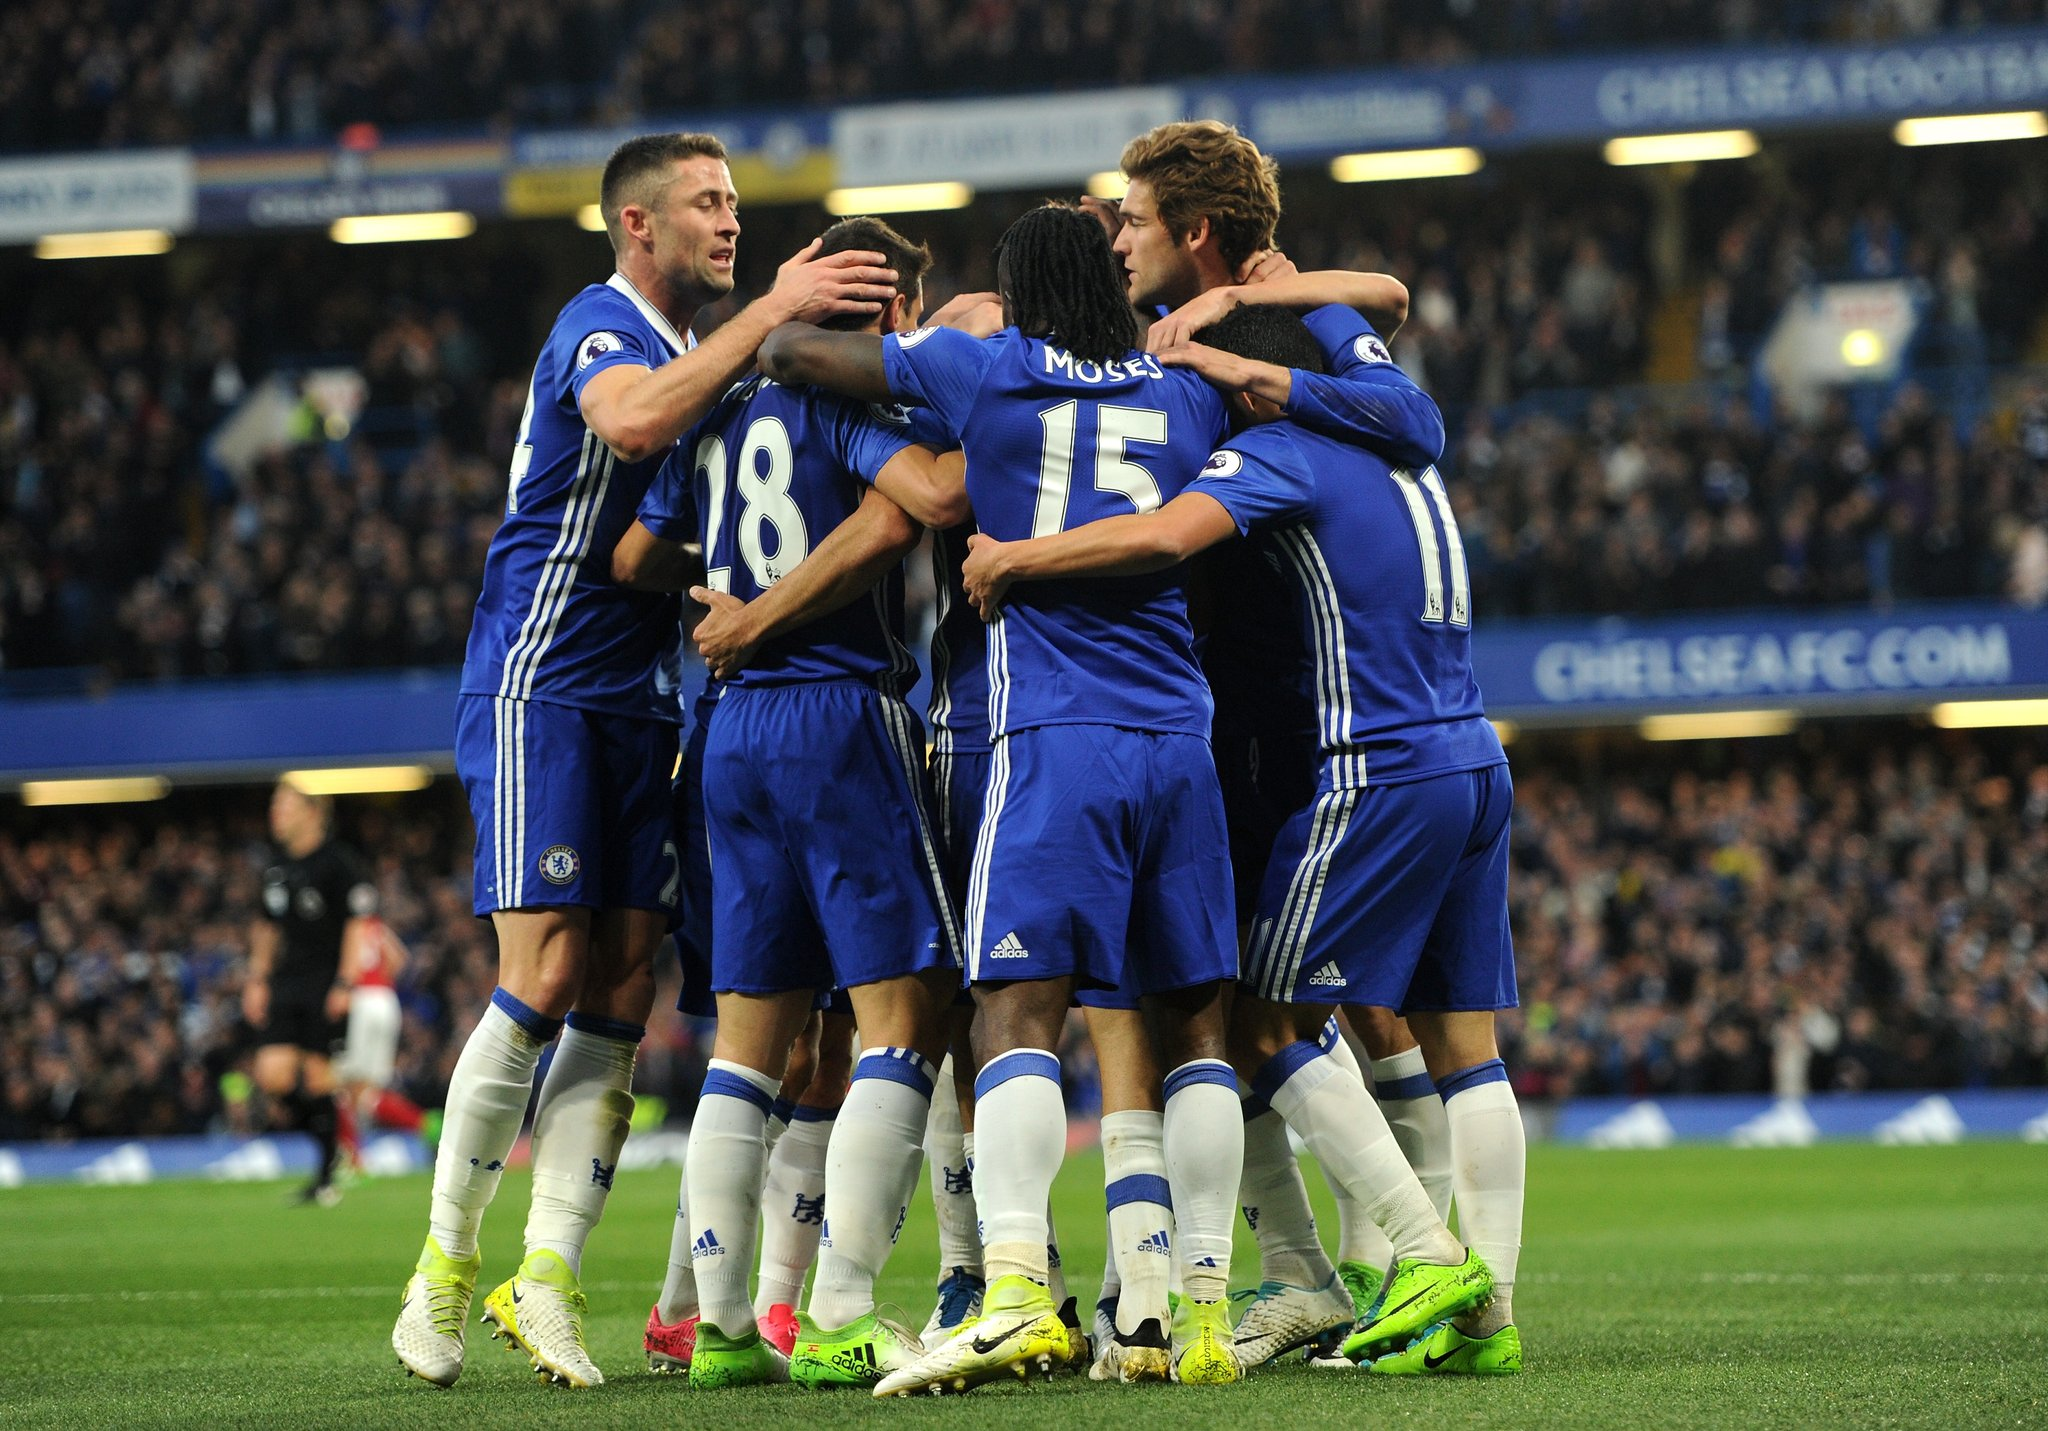 Merson: Chelsea Need Back-Up For Moses, Alonso, Luiz